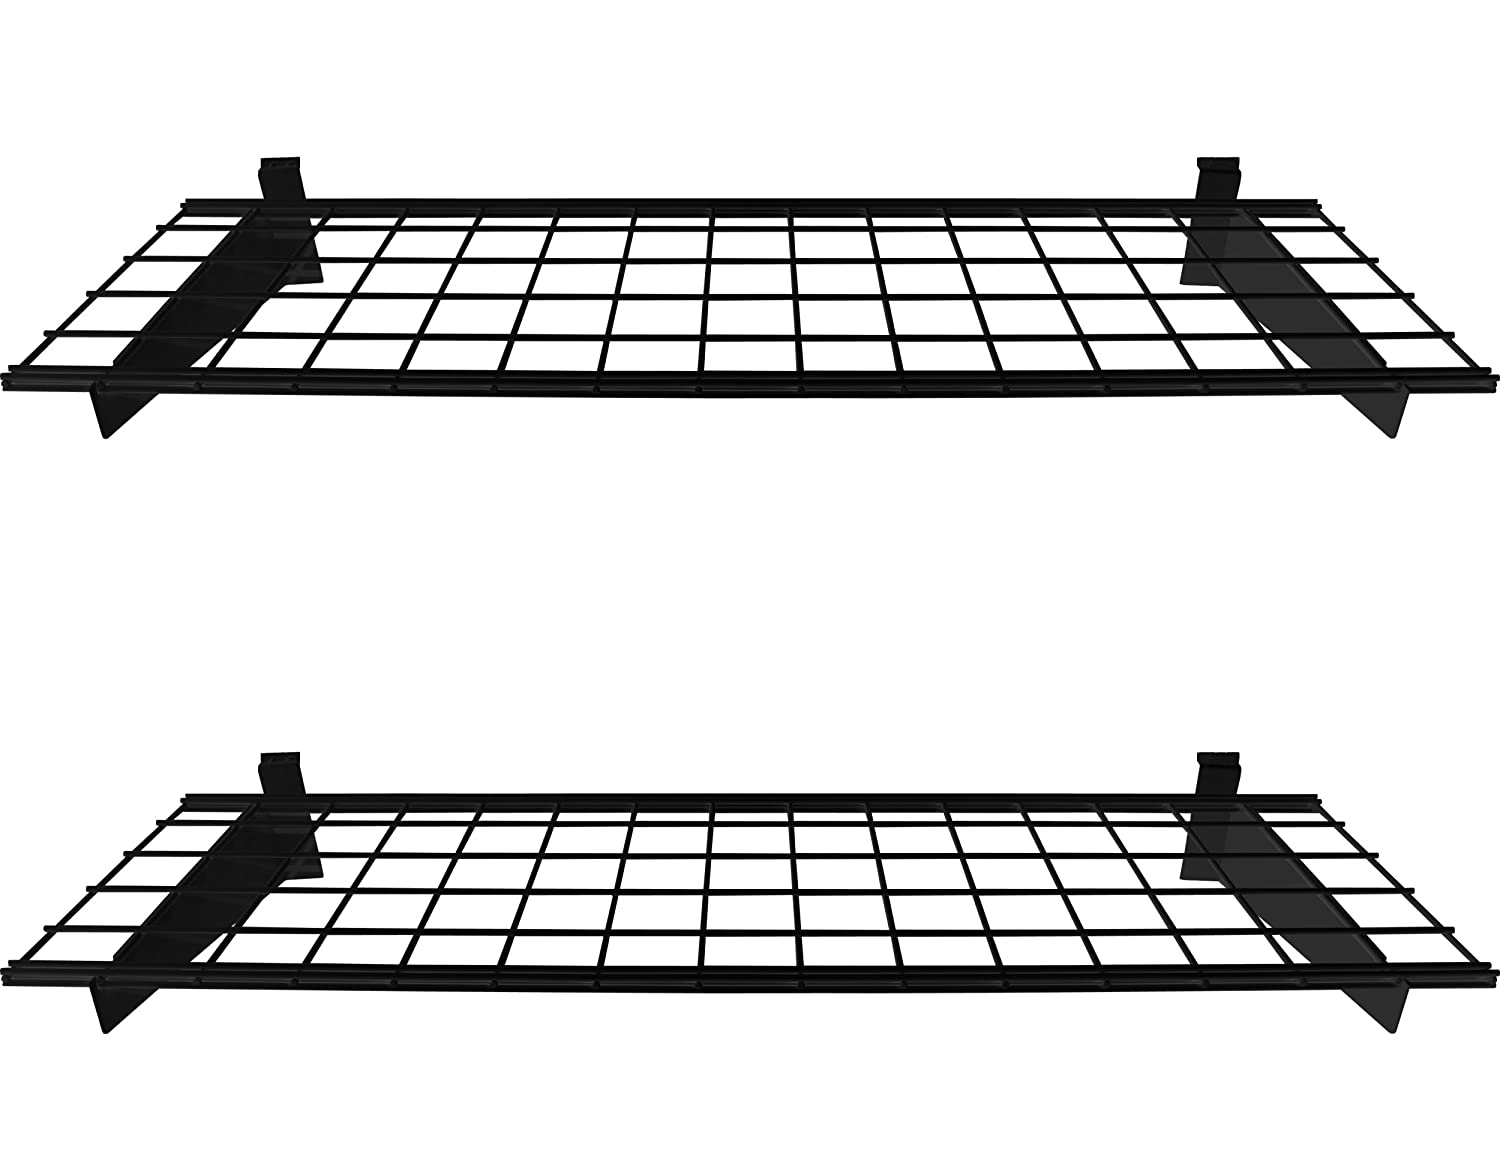 HyLoft 00291 Slat Wall Shelf, 2-Pack, Black (Wall Only), 45x15 45x15 Knape & Vogt